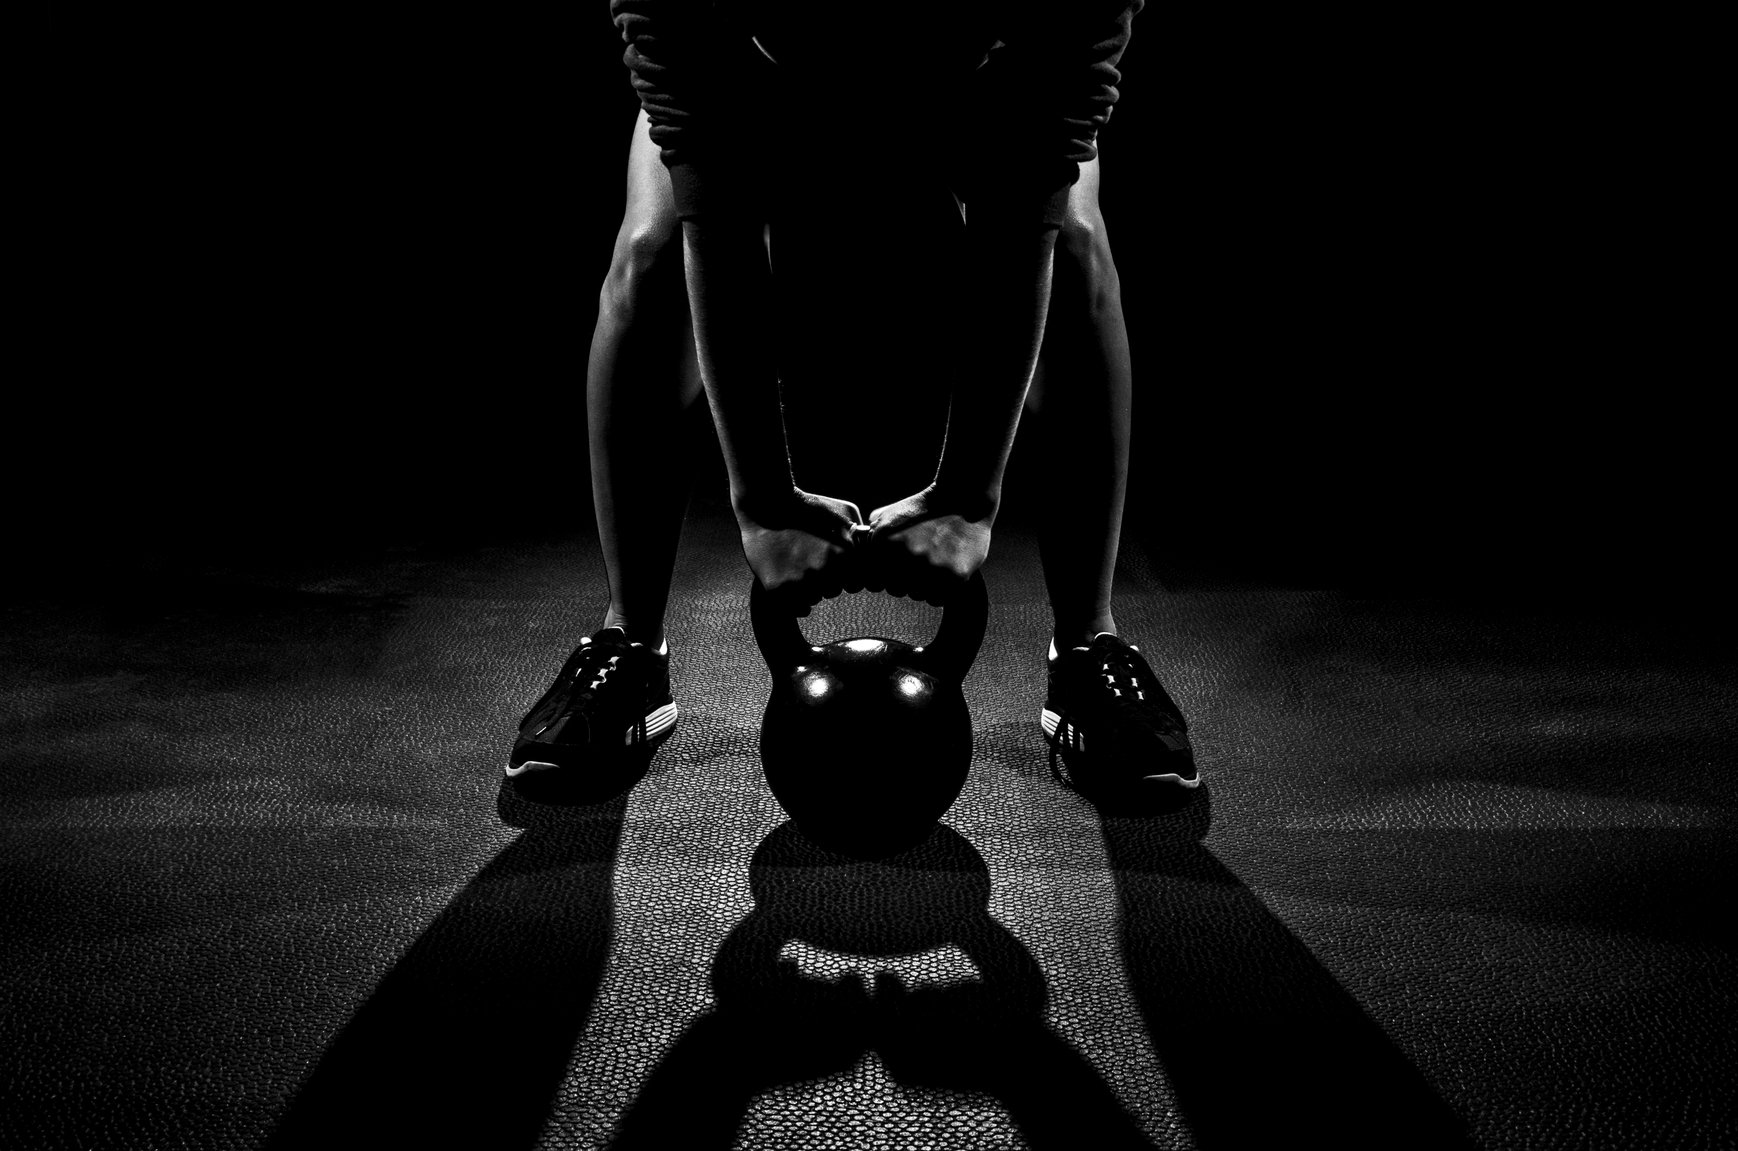 Crossfit Wallpapers High Quality Download 1738x1151